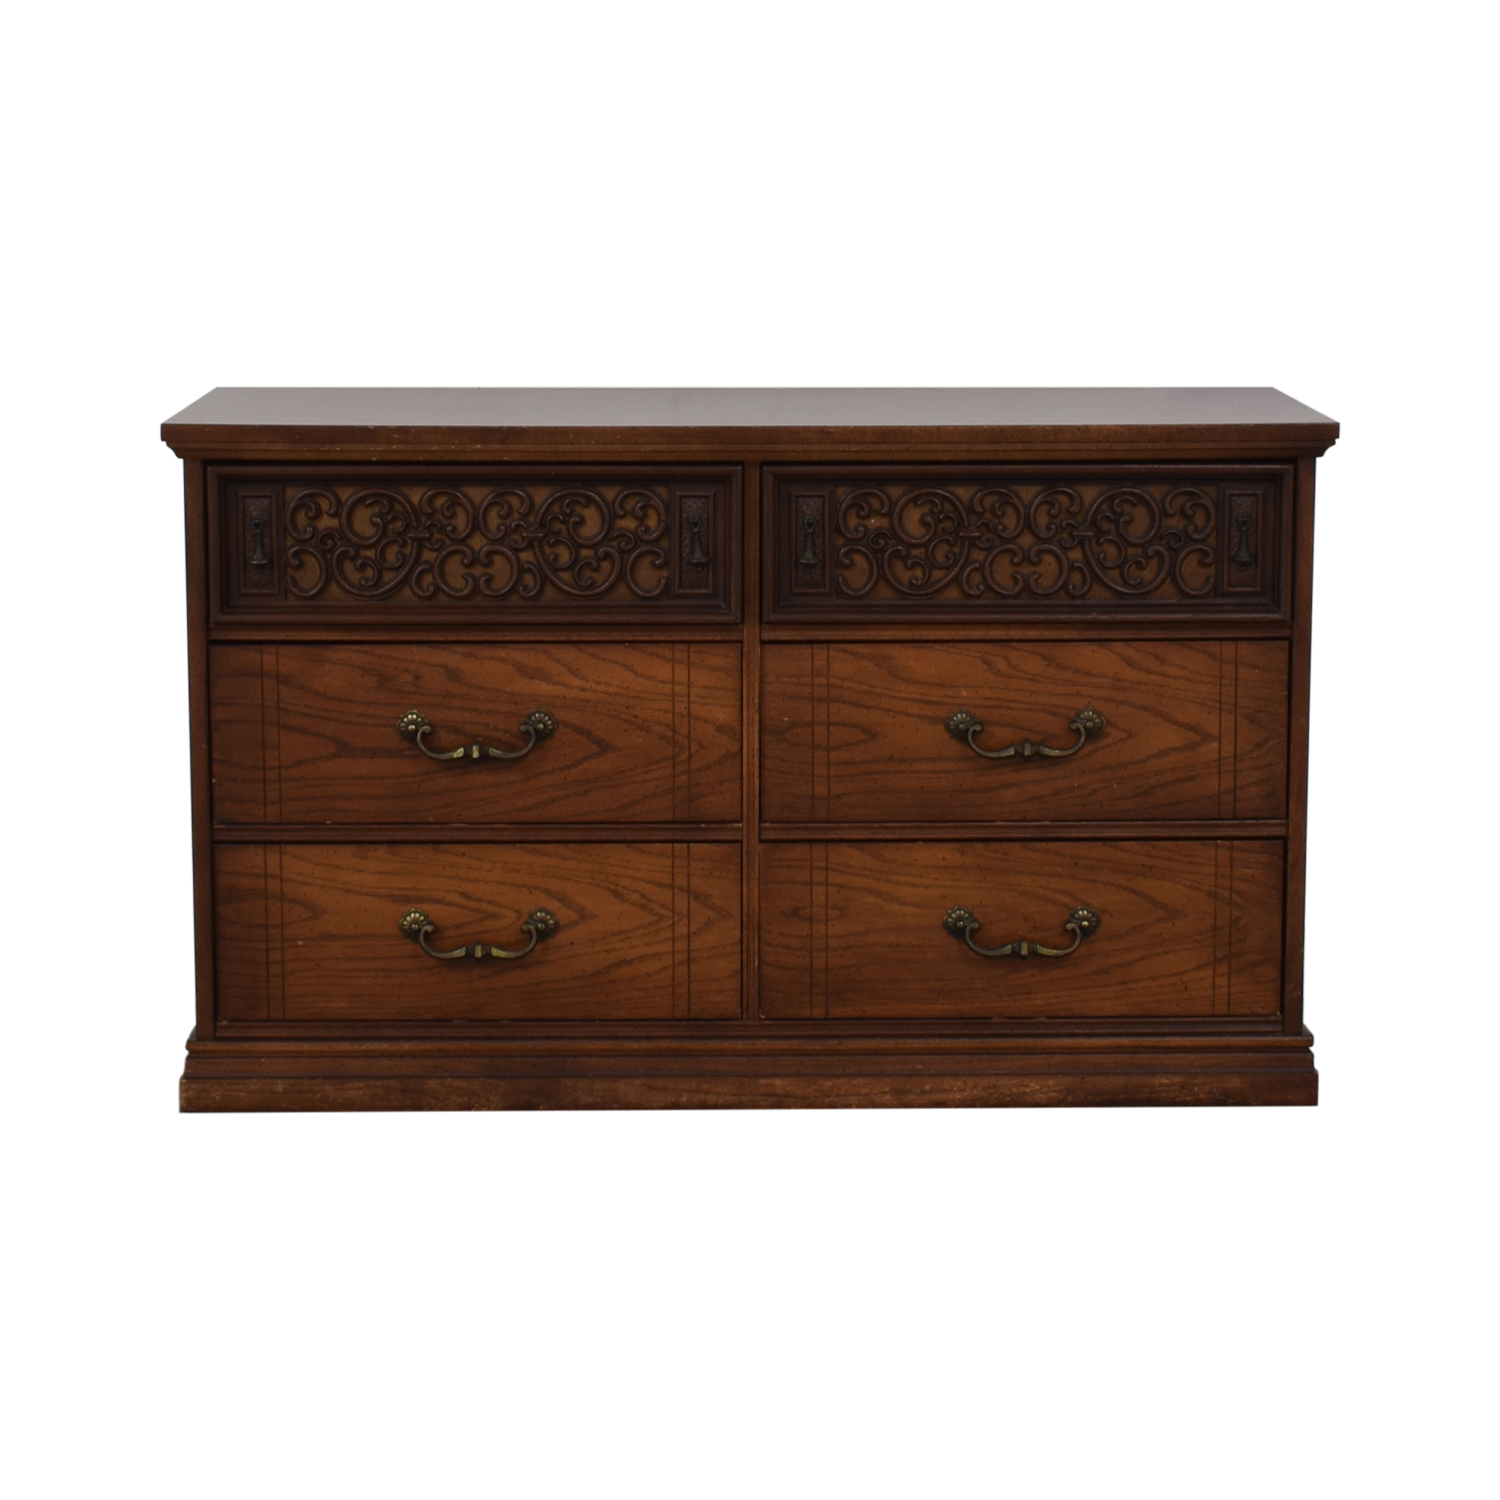 Bassett Furniture Bassett Furniture Six Drawer Dresser price